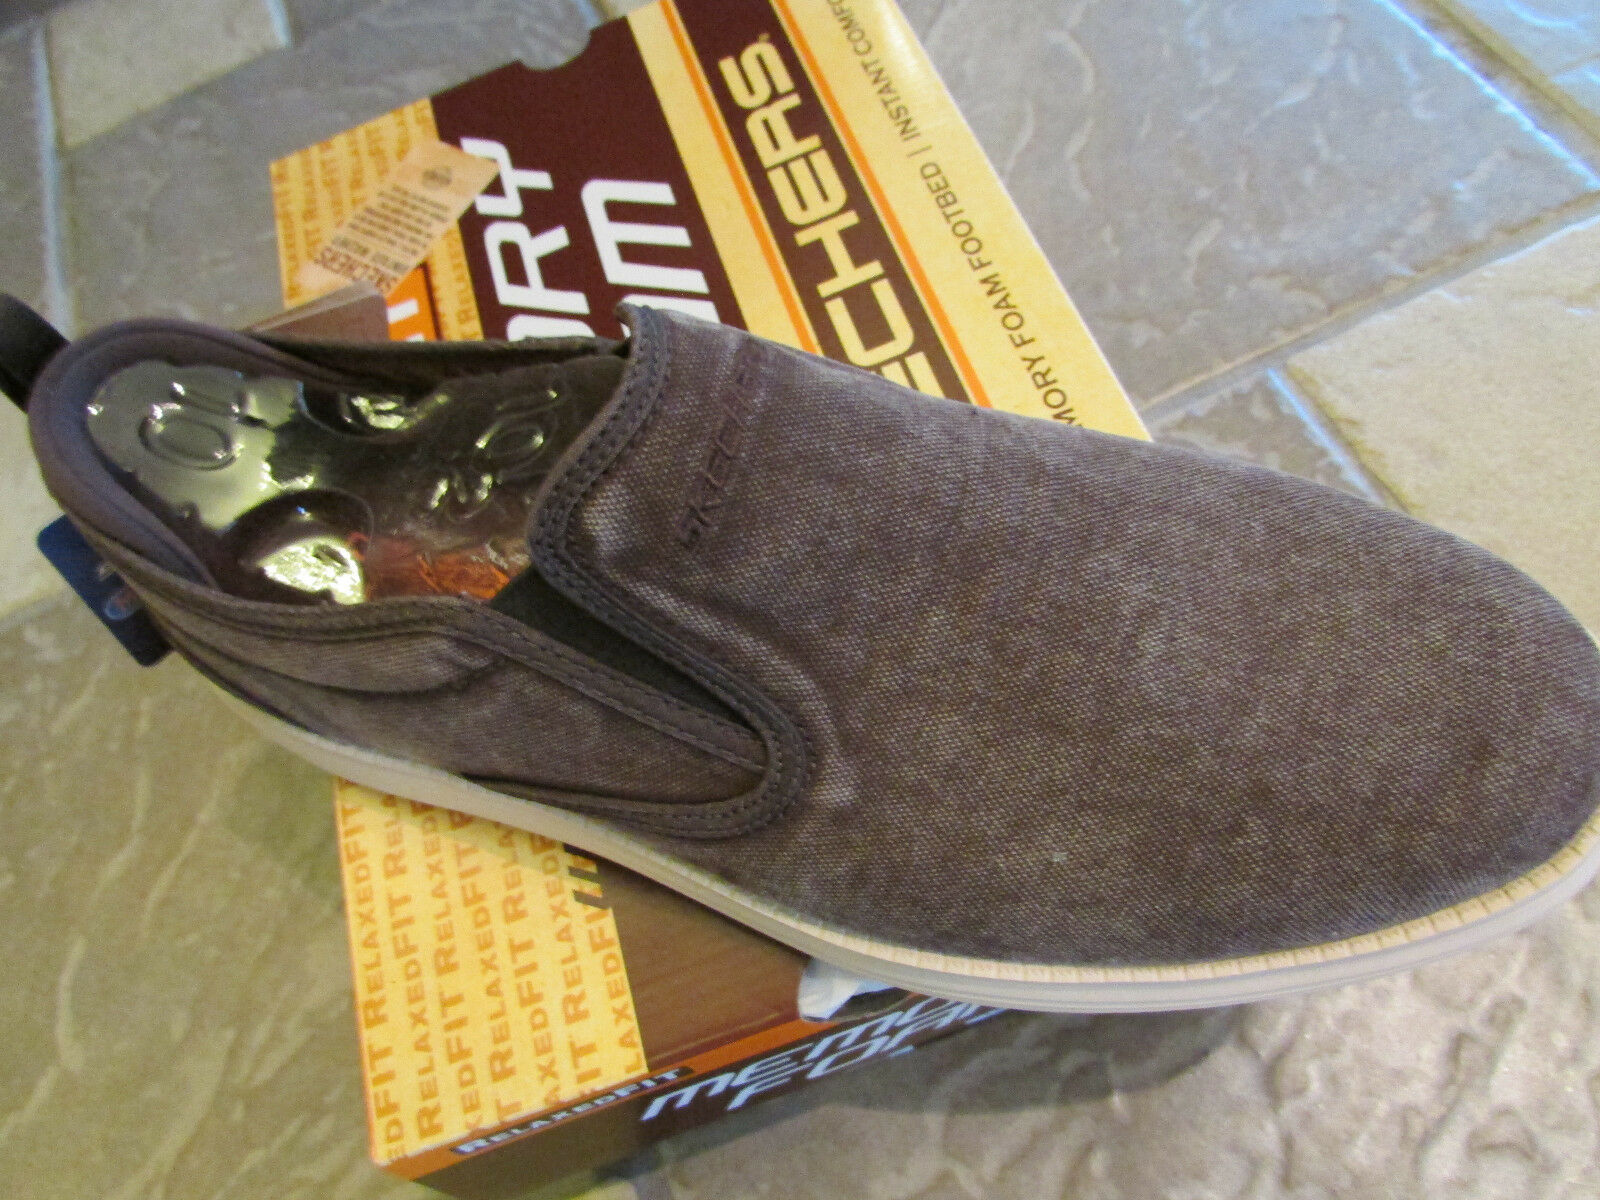 NEW SKECHERS STATUS GELDING BROWN LOAFER SHOES MENS 10.5 SLIP ON STYLE FREE SHIP